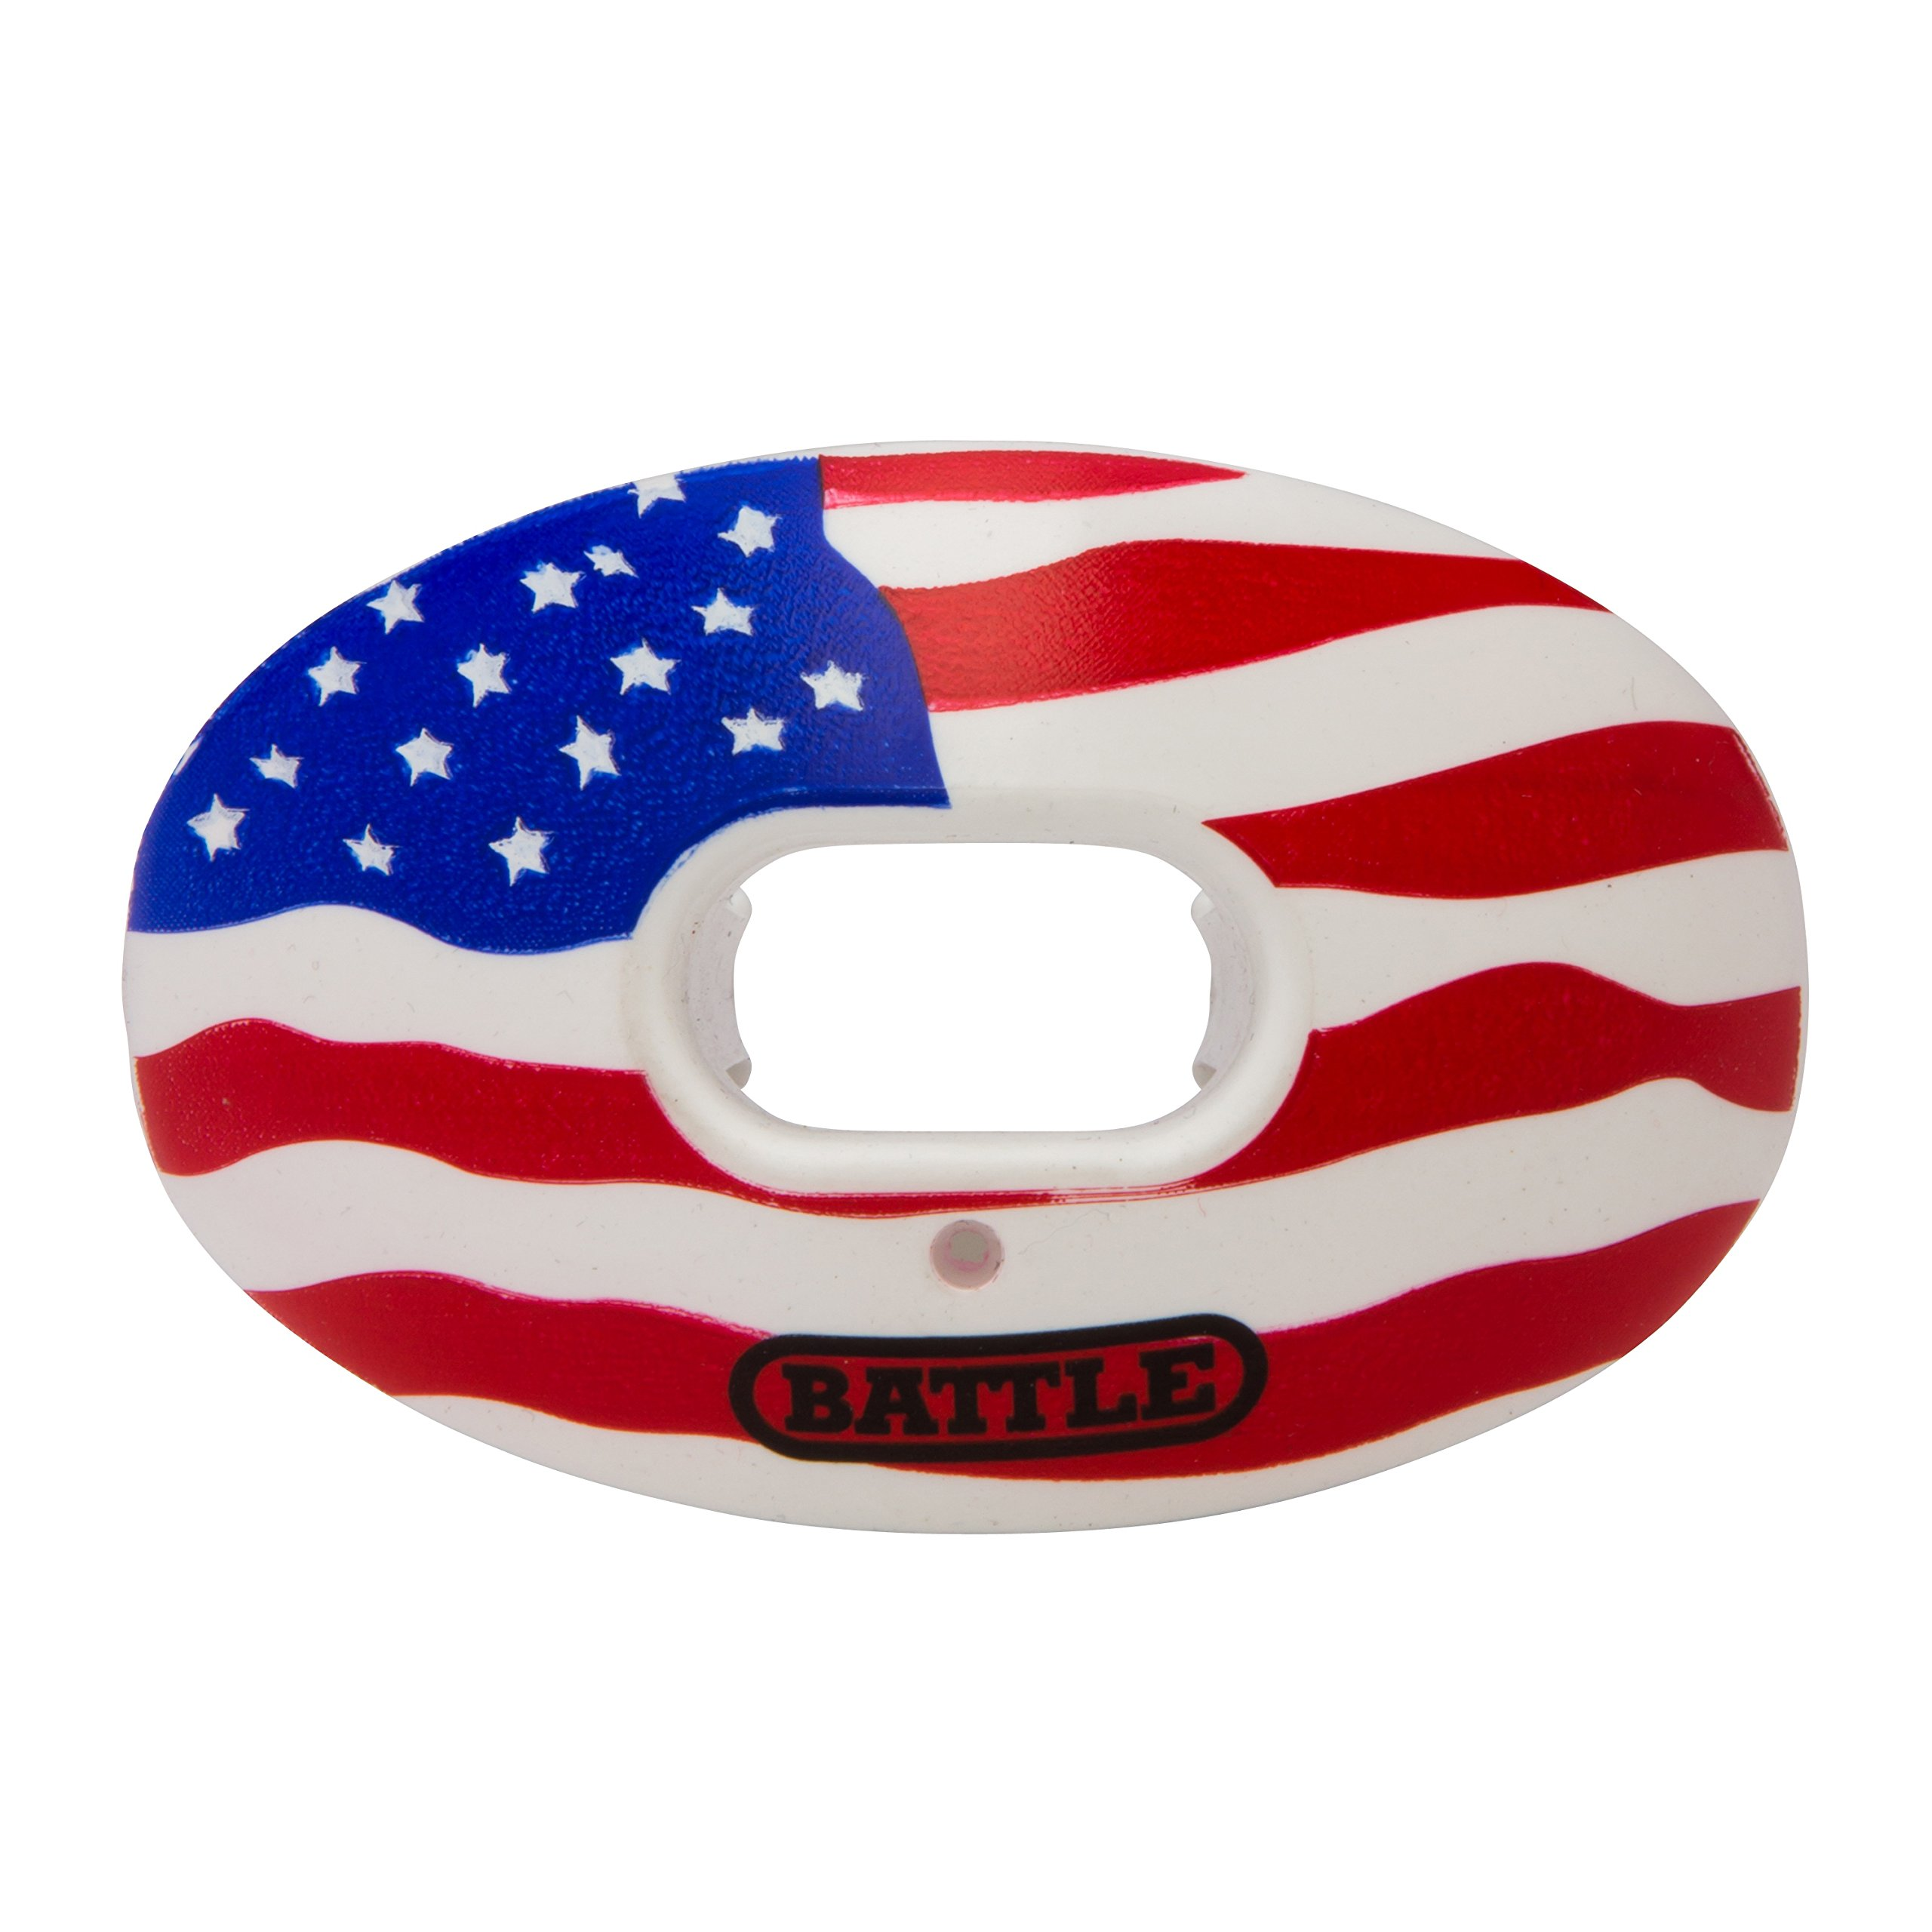 Battle Oxygen Lip Protector Mouthguard - Football and Sports Mouth Guard - Maximum Oxygen - Mouthpiece Fits with or Without Braces - Impact Shield Protects Lips and Teeth, Limited Edition USA Flag by Battle